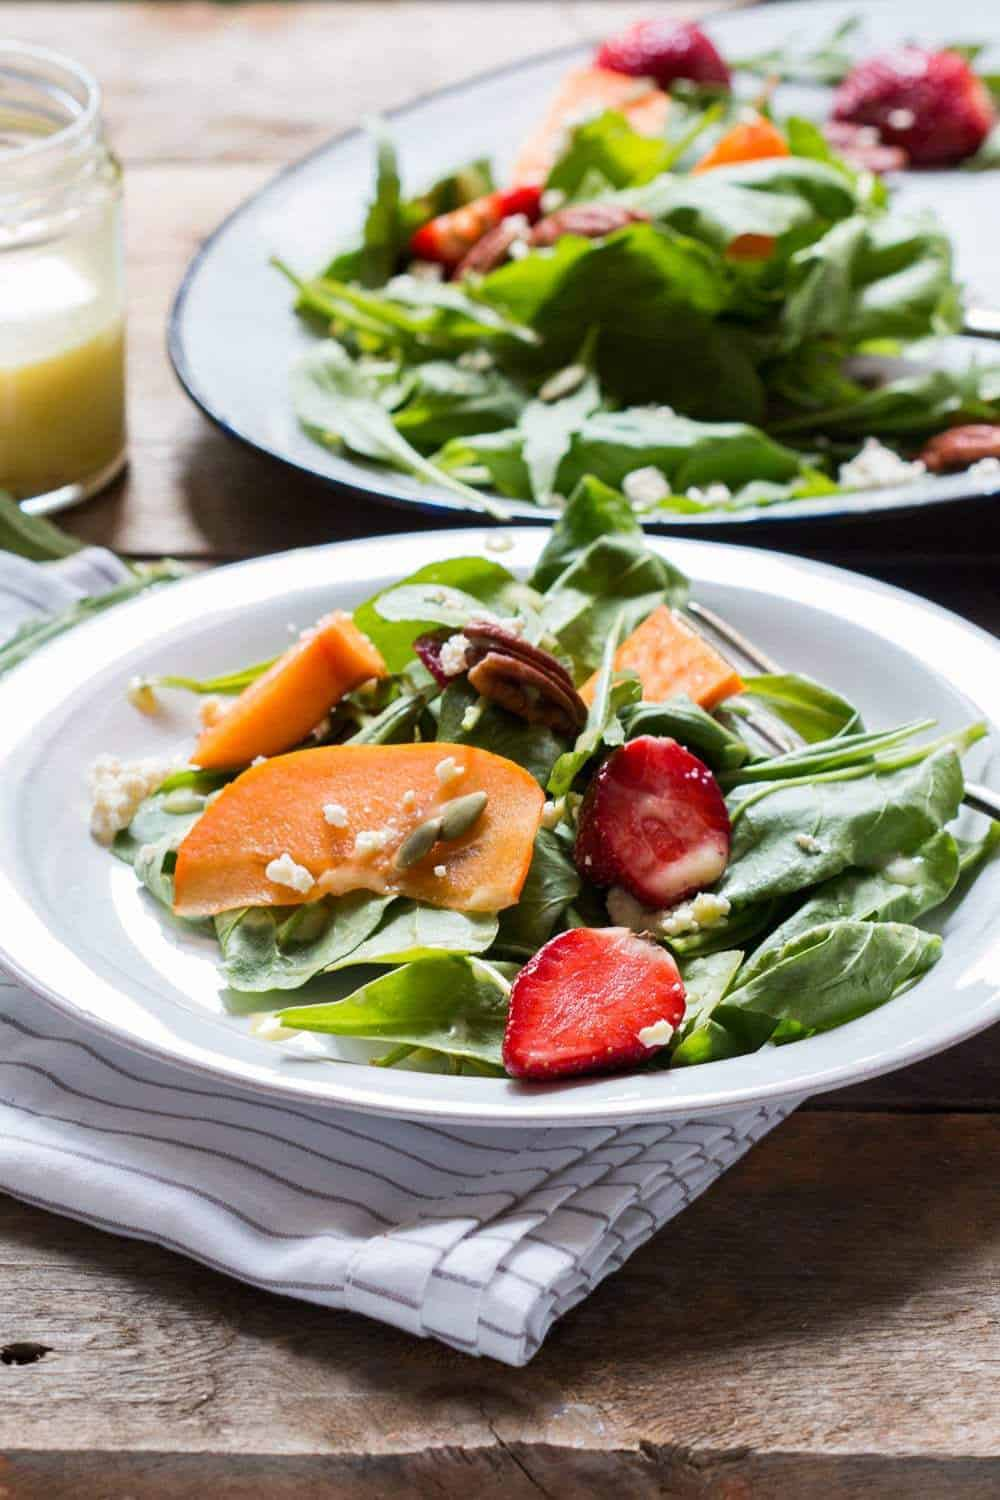 Persimmon ricotta salad + 15 Farmers market recipes to try this November! Delicious, autumn recipes made with fresh, seasonal produce from your local farmers market or CSA bin. Eat local!